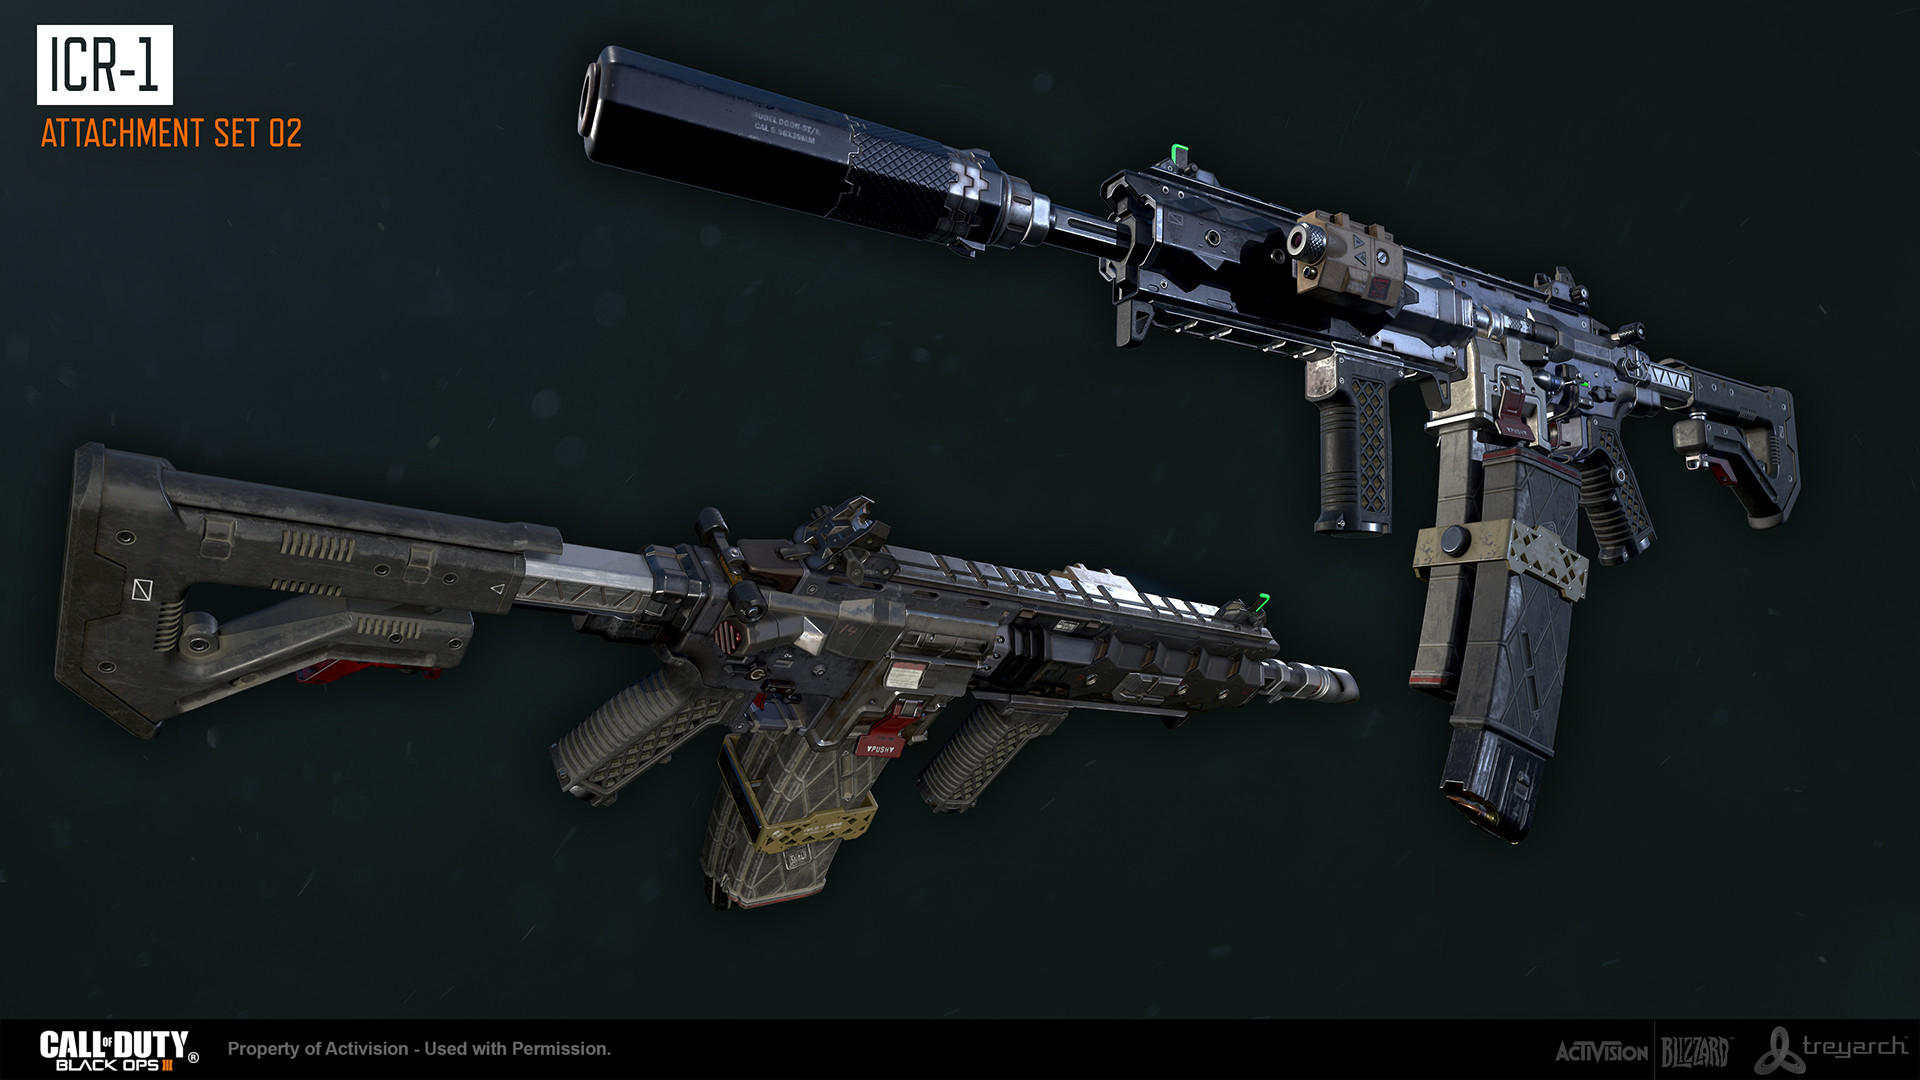 ArtStation - Black Ops 3: ICR-1 Assault Rifle, Ethan Hiley